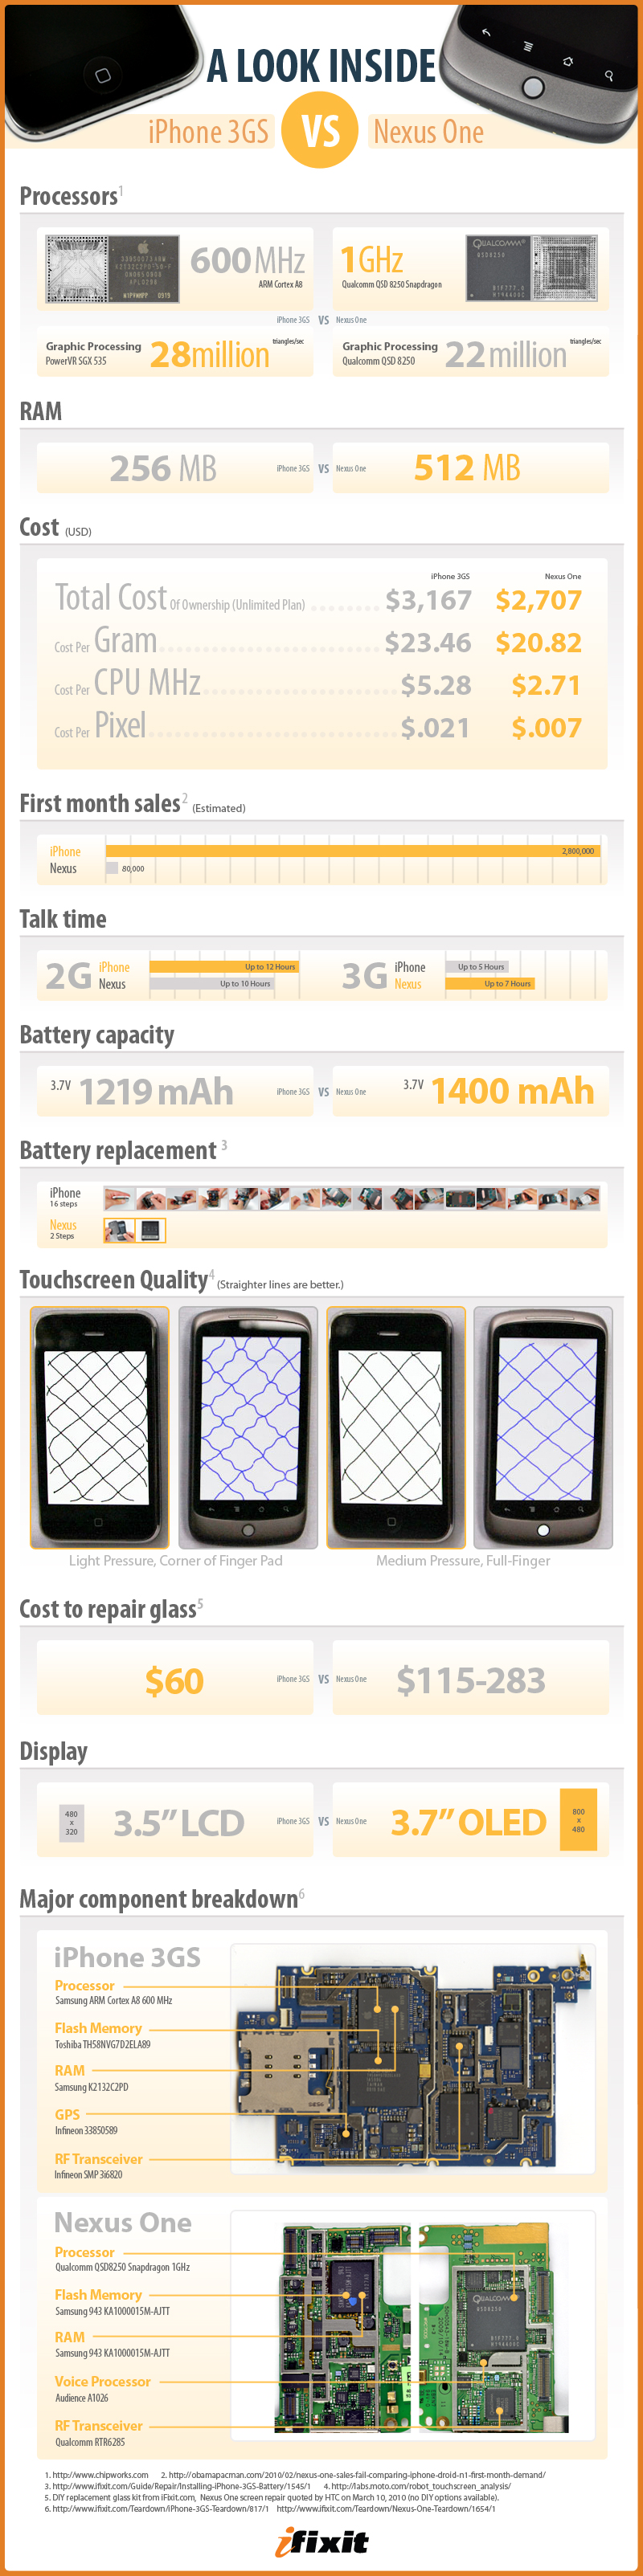 infographic nexus one vs iPhone 3gs